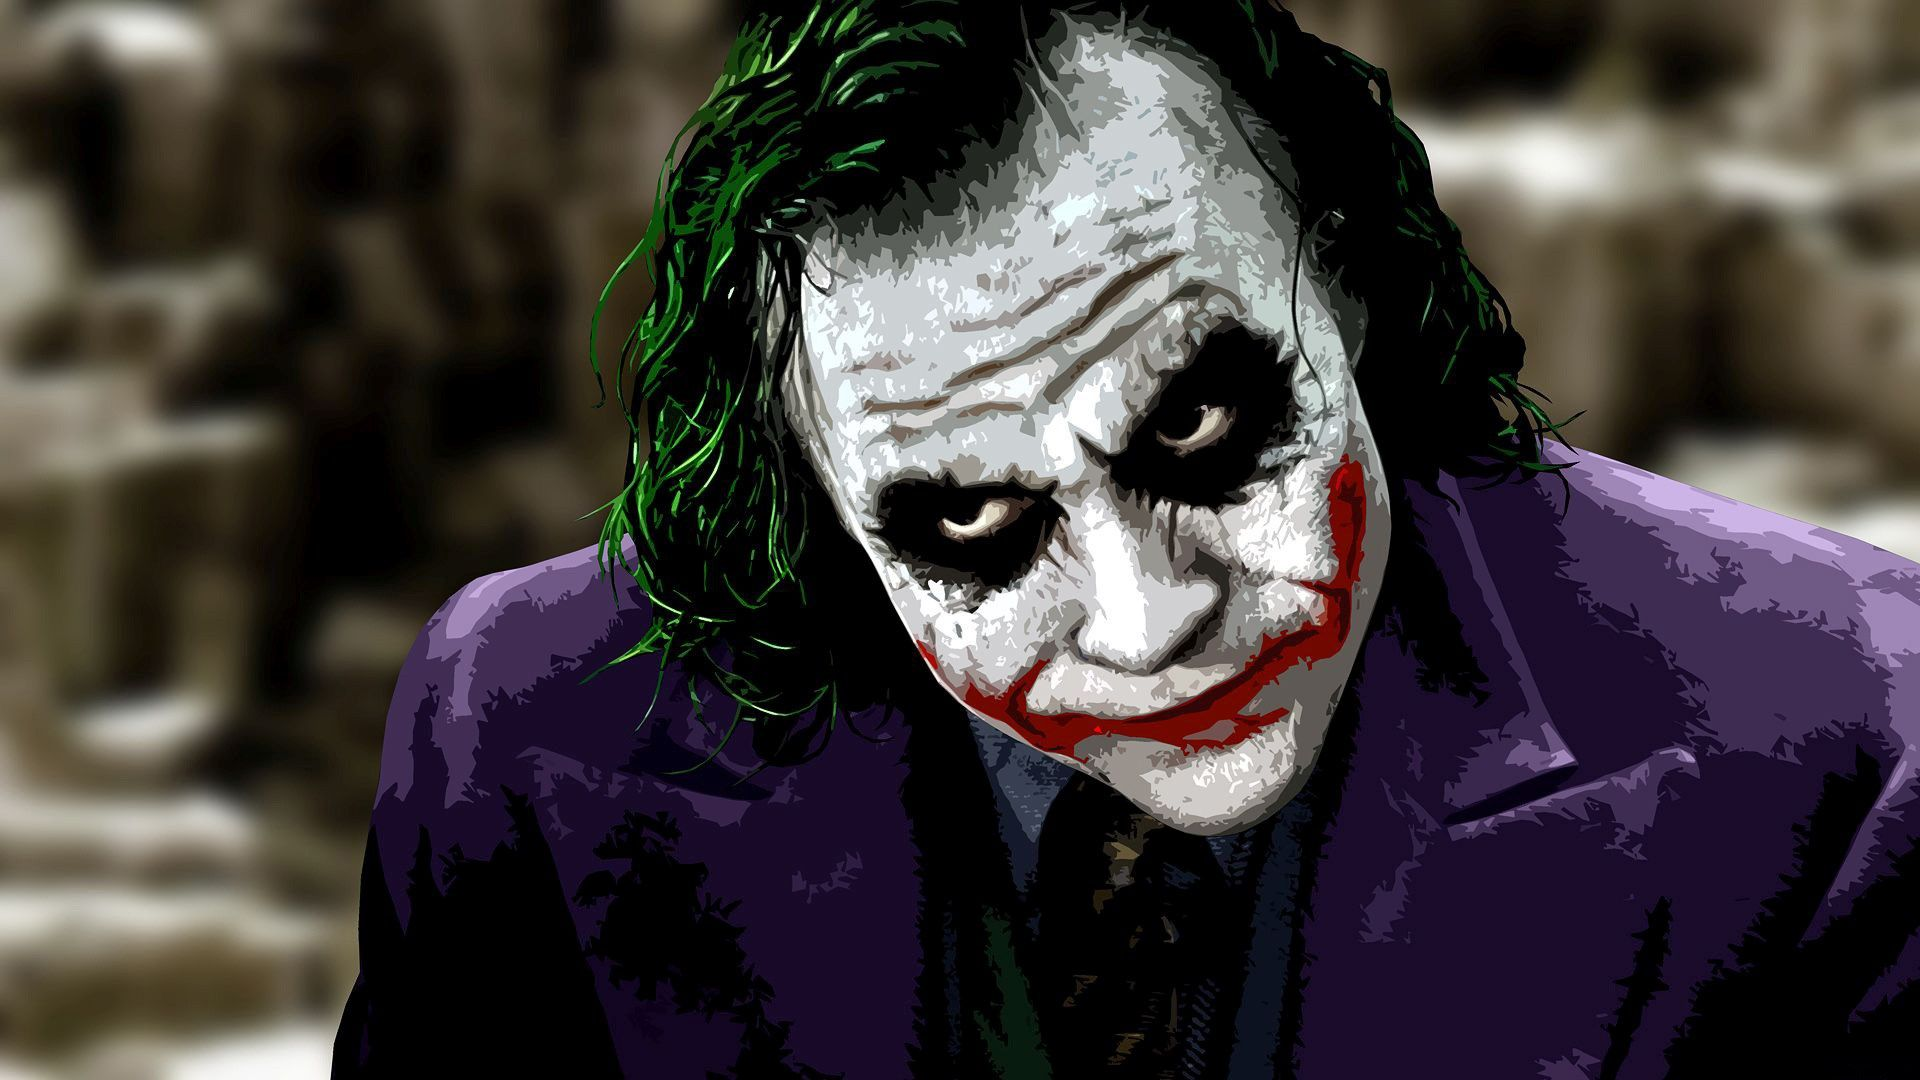 1920x1080 Joker Hd Backgrounds Jpg 256 Kb Dengan Gambar